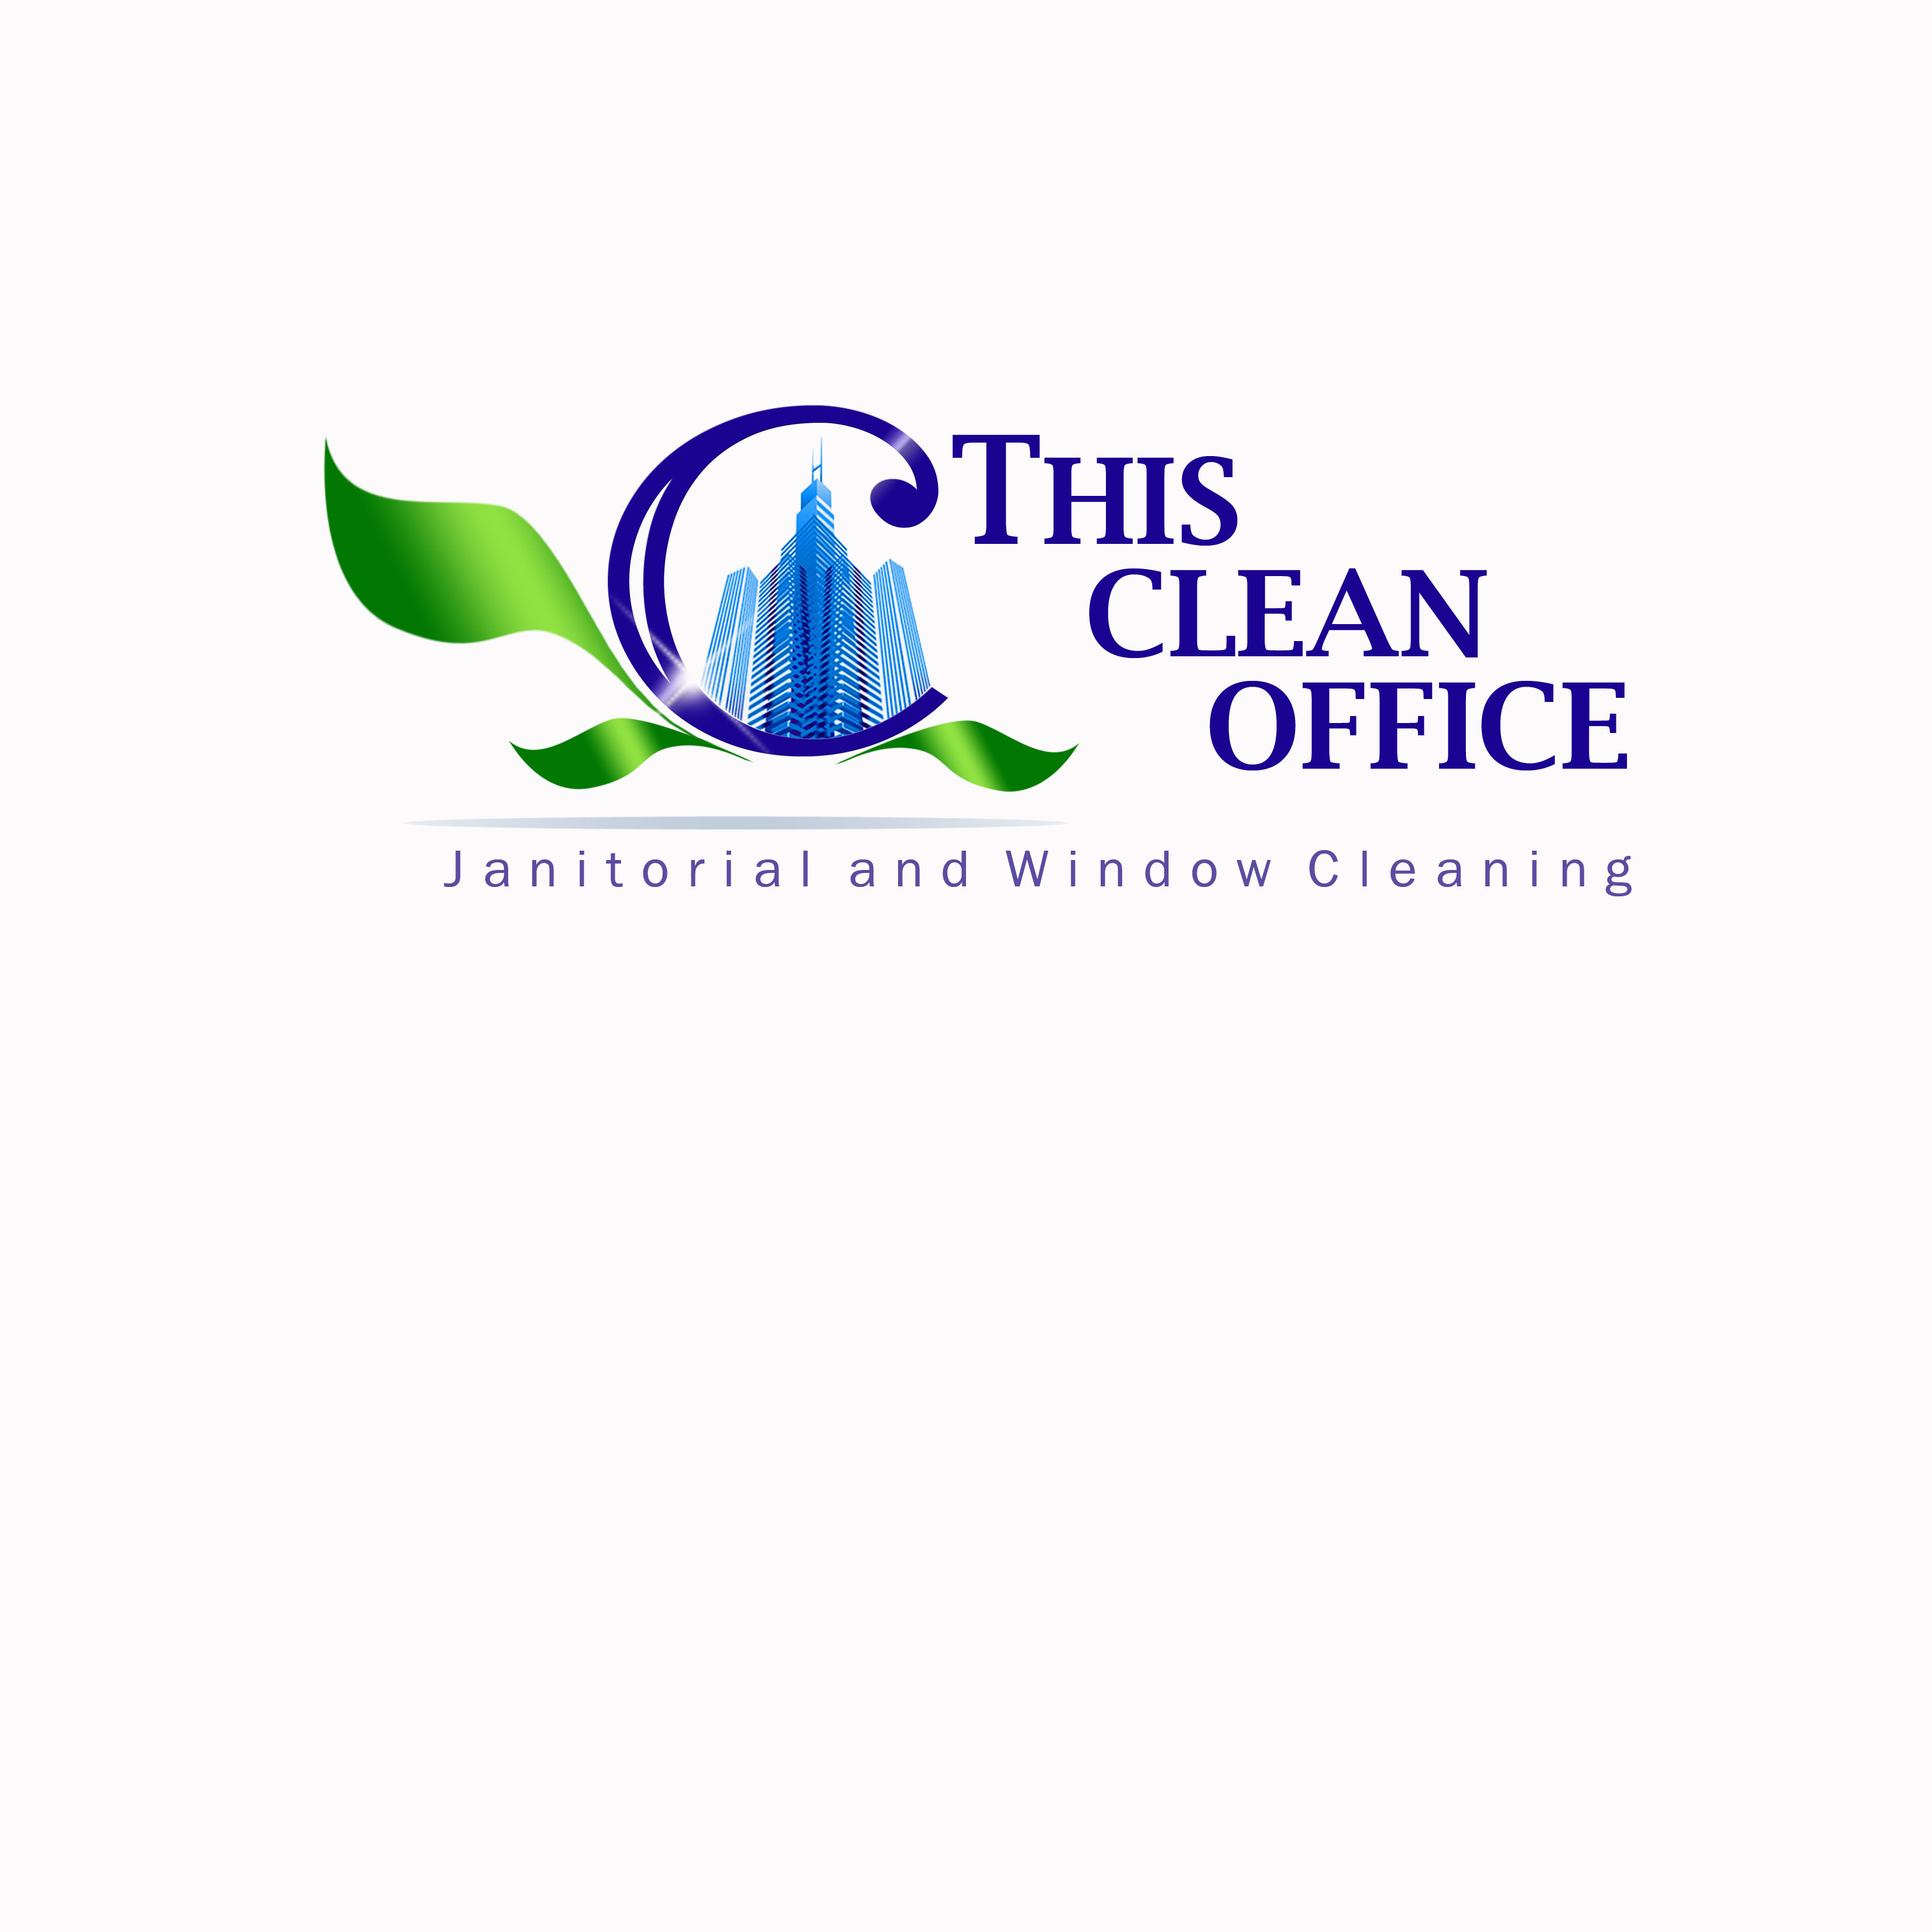 Logo Design by Allan Esclamado - Entry No. 82 in the Logo Design Contest Professional and Unforgettable Logo Design for This Clean Office.